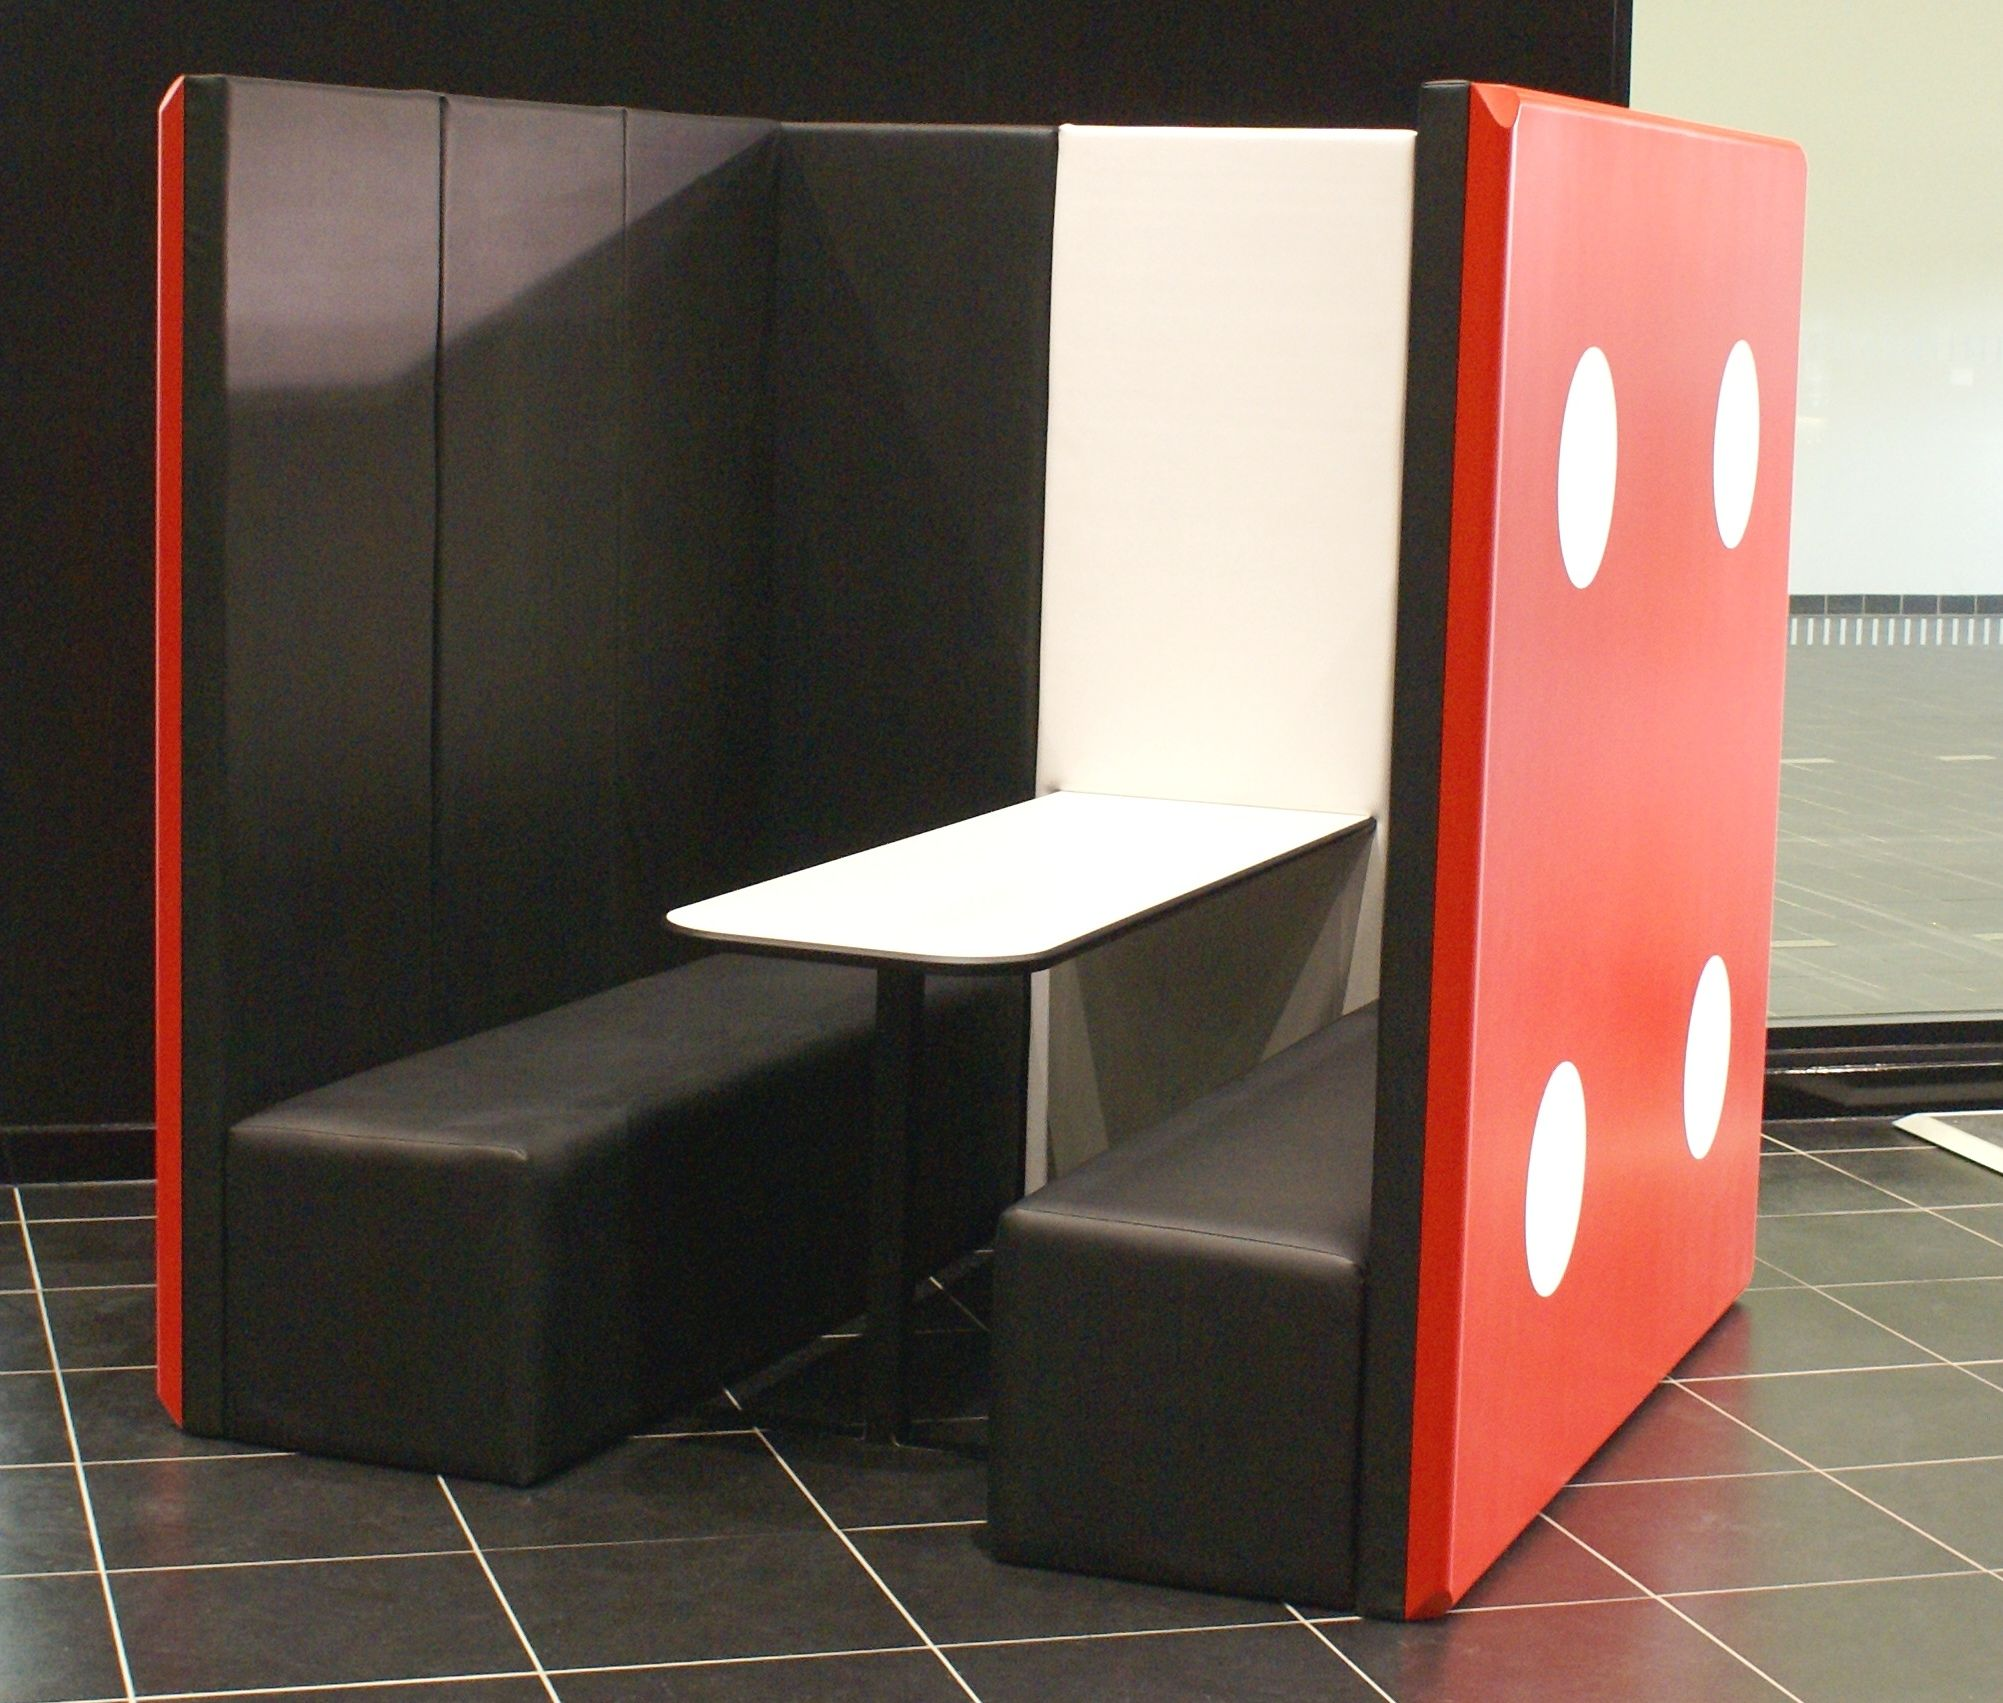 office pod furniture. Meeting Pod And Office Booth Furniture. Ideal For Open Areas Where You Can Create A Quiet Private Space Working Or Standalone Area Furniture